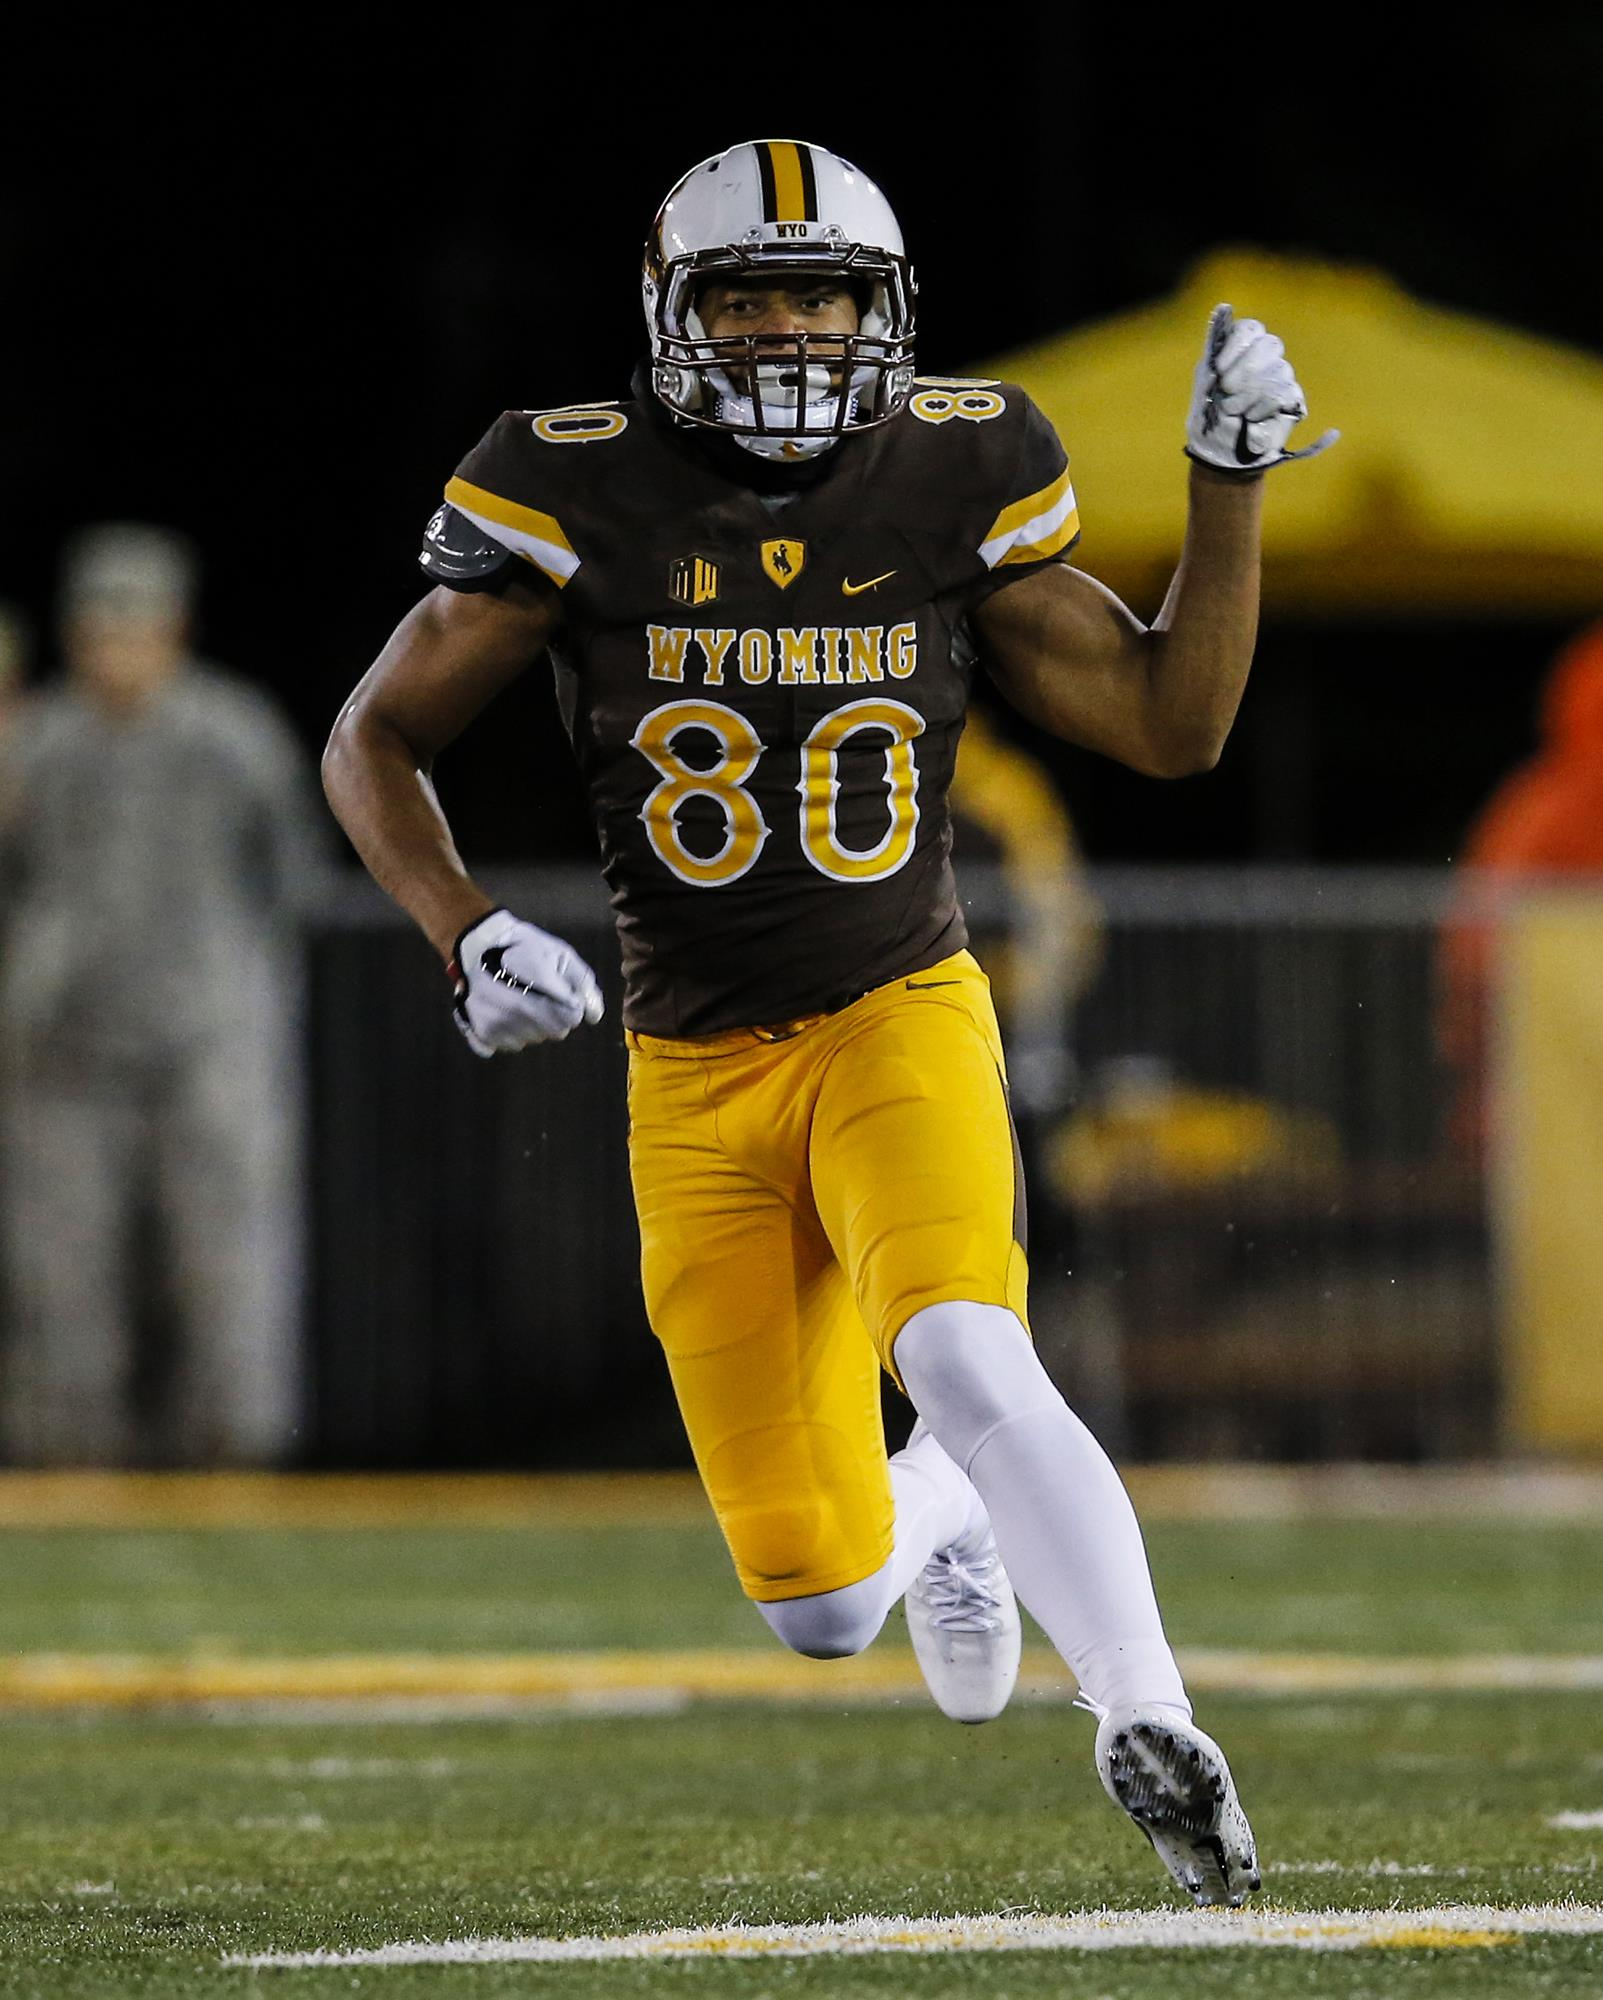 cheaper 5818f 6e5f2 James Price - Football - University of Wyoming Athletics